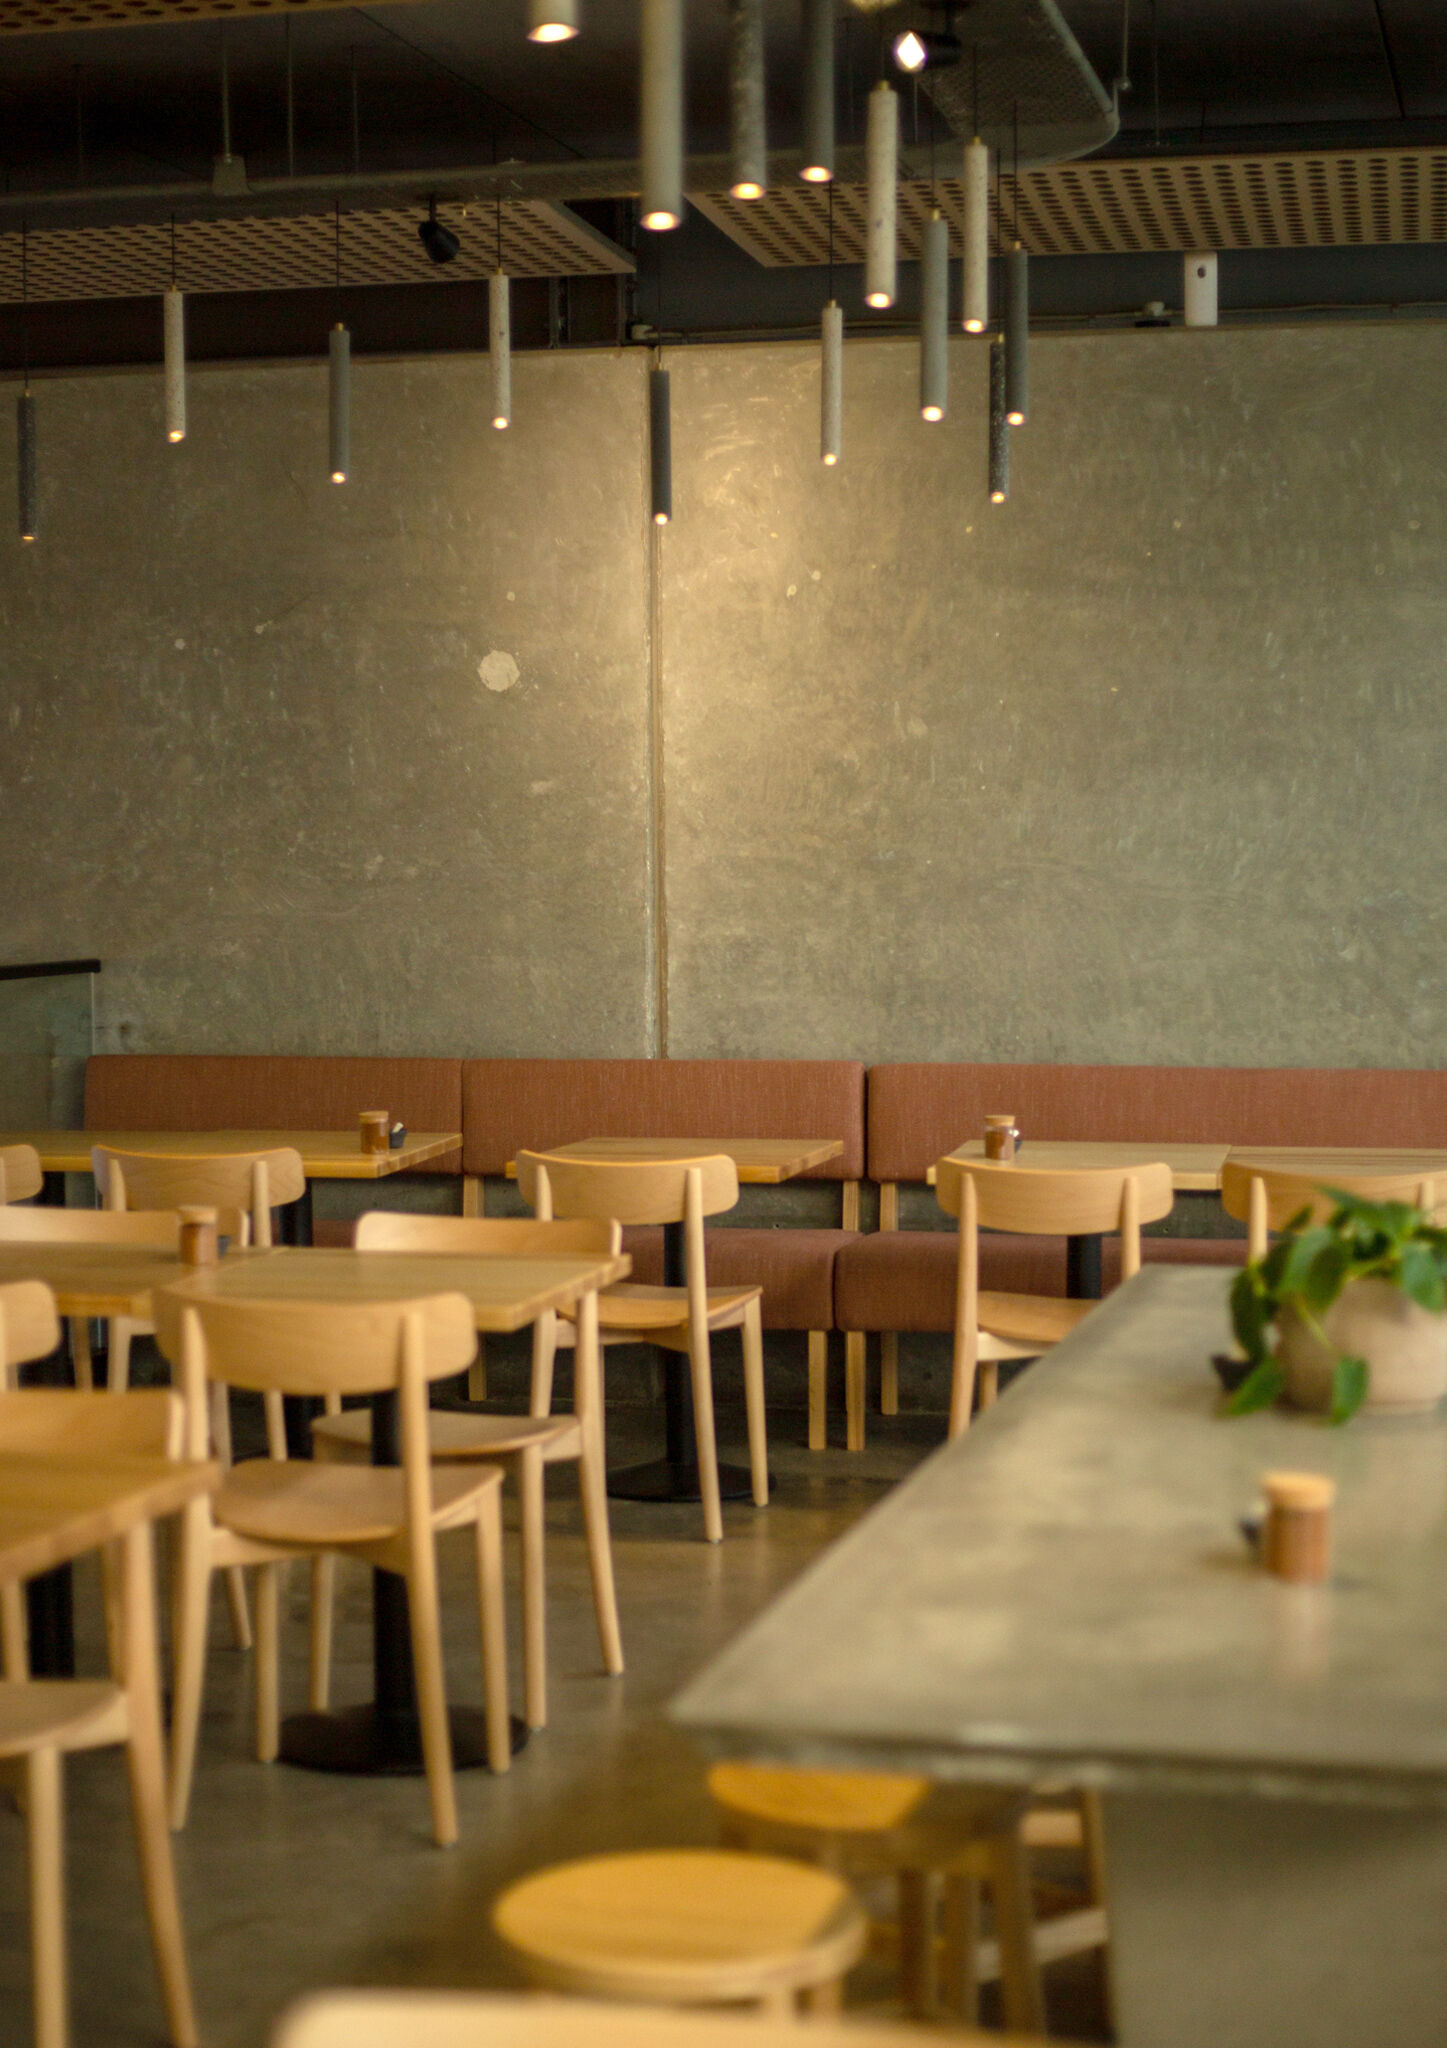 A calm and cheerful vibe at Benedict's Cafe in Eden Terrace